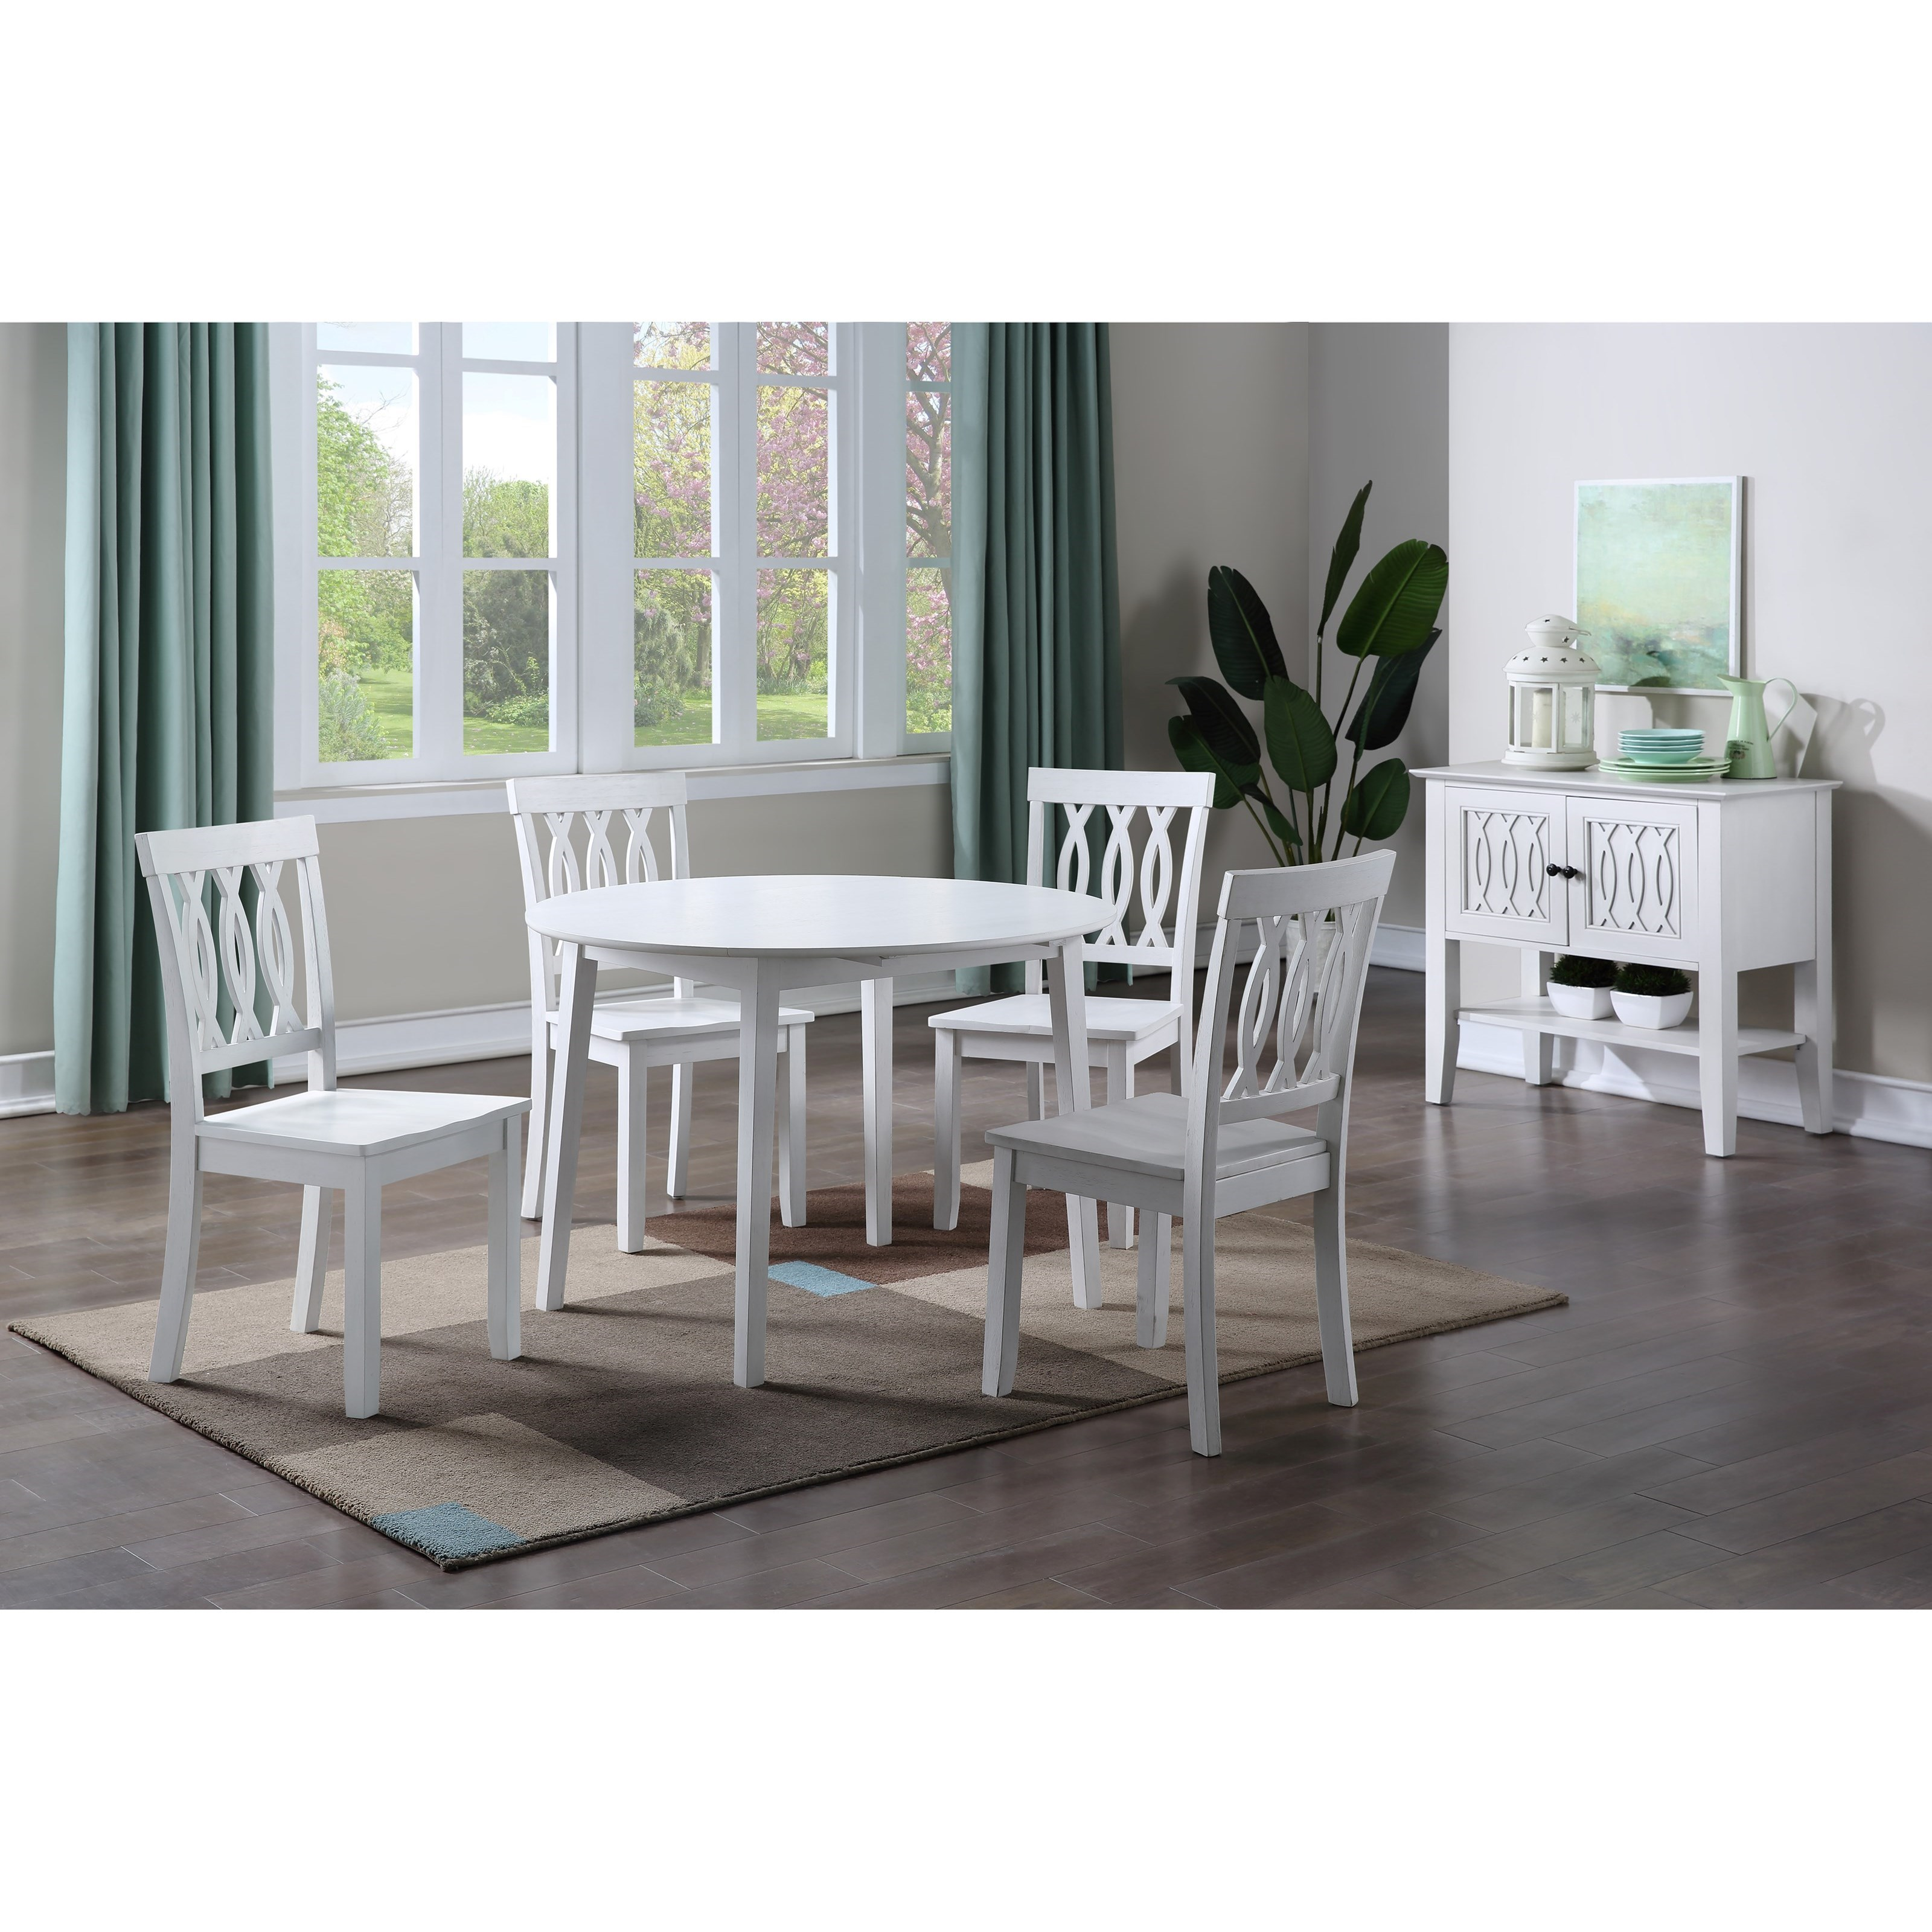 Naples Casual Dining Room Group by Steve Silver at Northeast Factory Direct